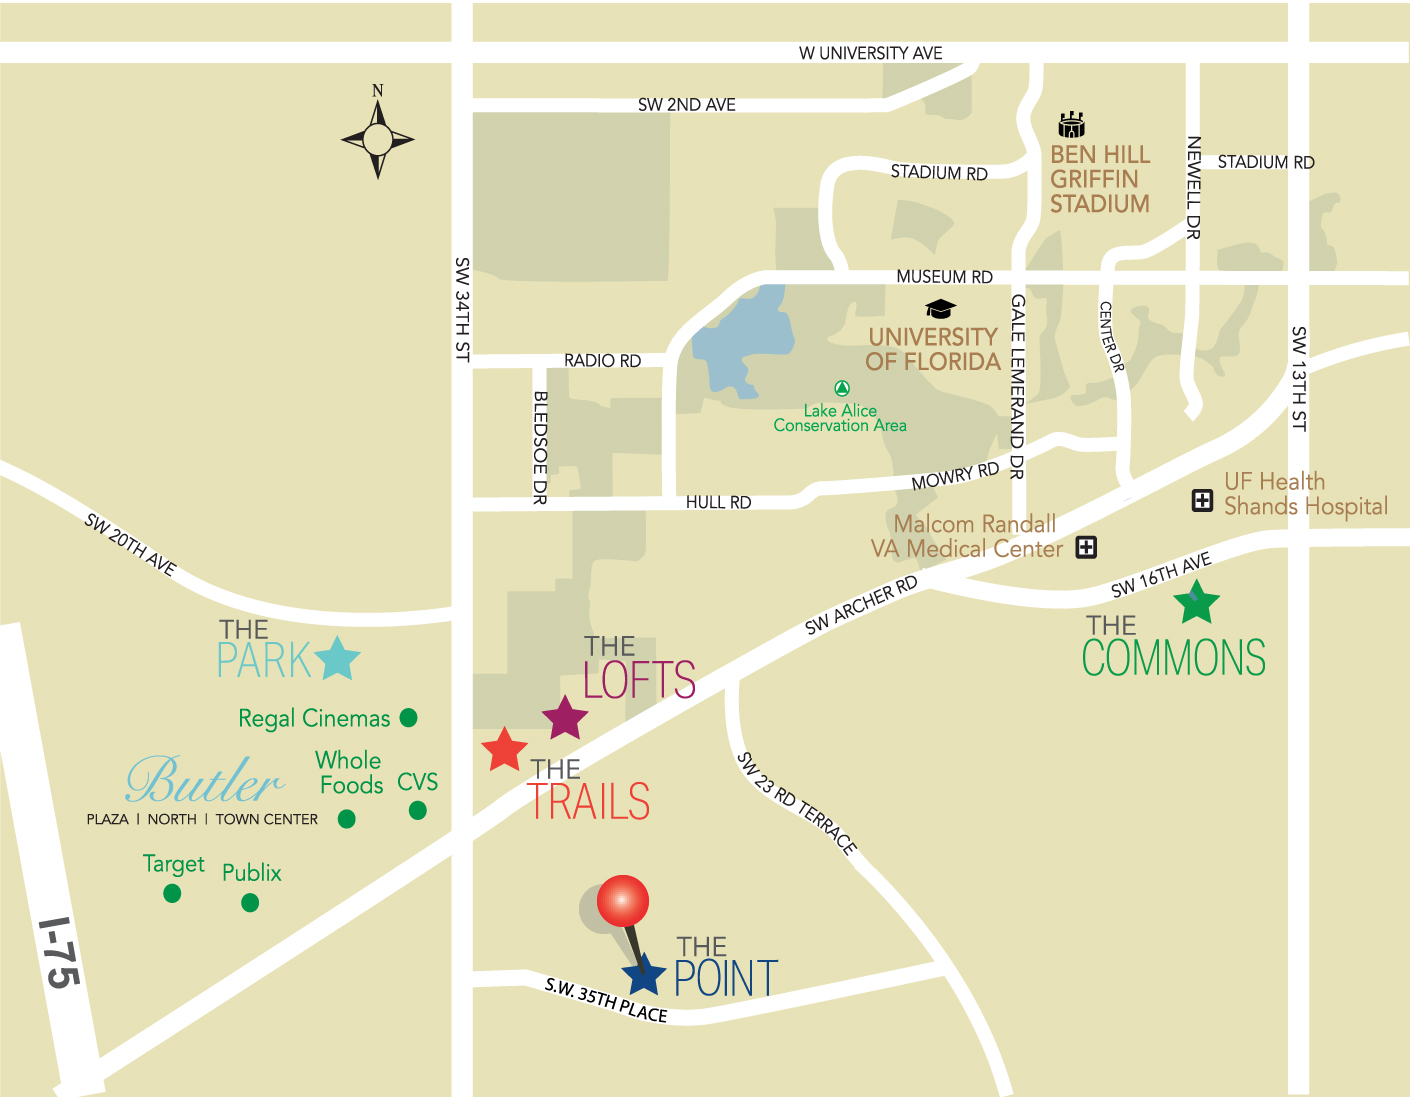 THE POINT GAINESVILLE location map